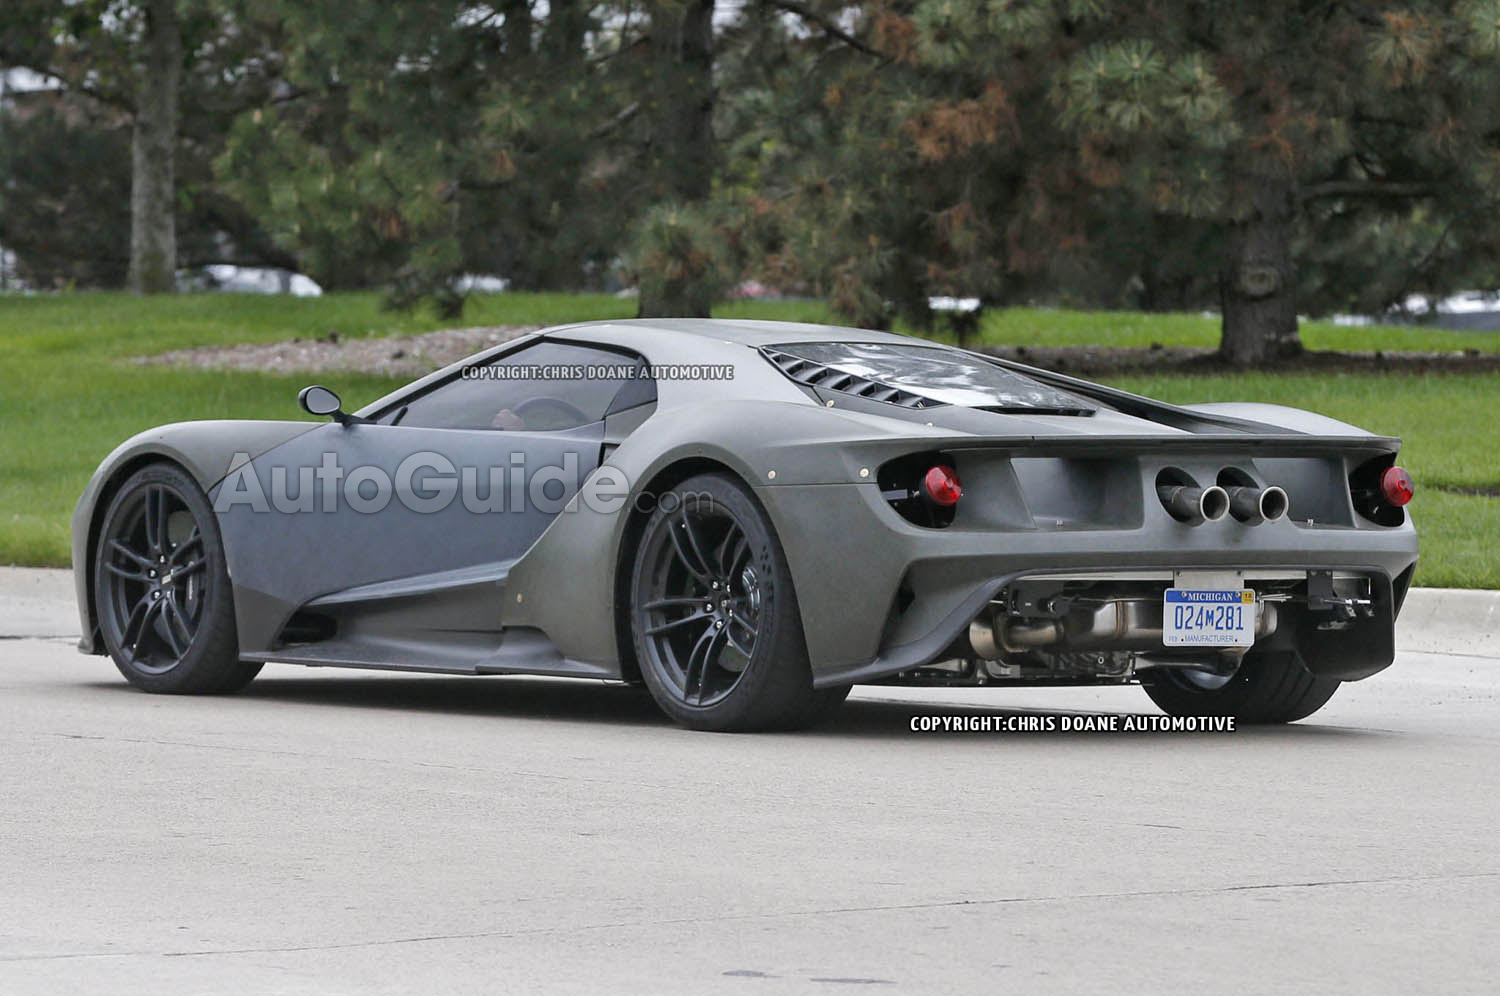 2017 Ford GT - A Sensation And A Future Investment